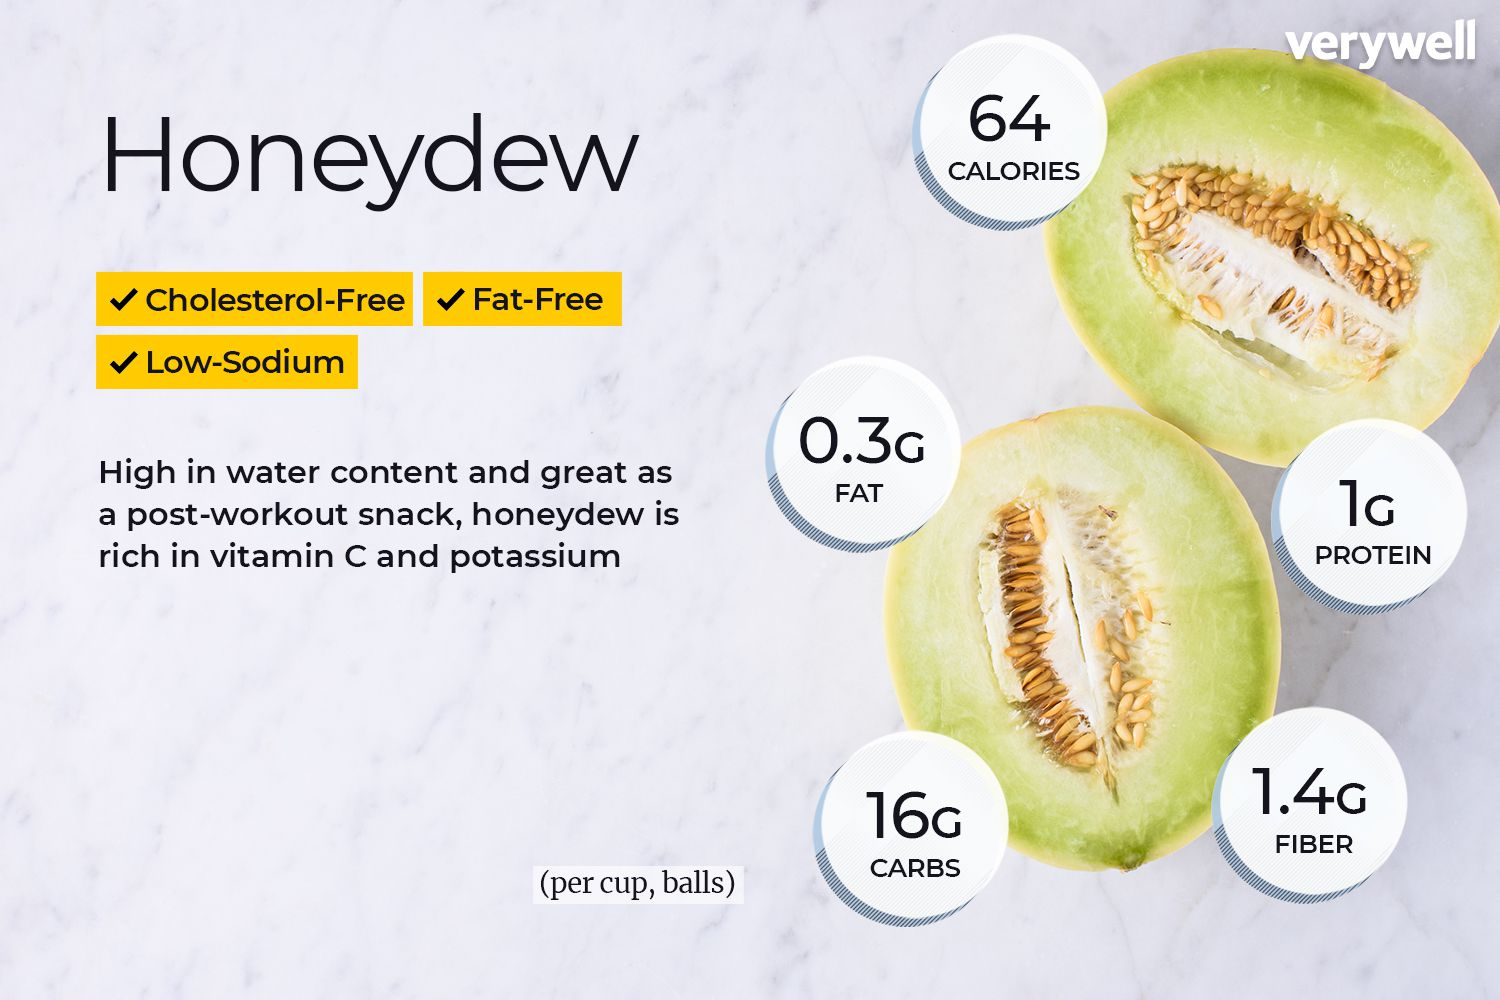 Honeydew Melon Nutrition Facts And Health Benefits It nearly resembles a melon and comes in different. honeydew melon nutrition facts and